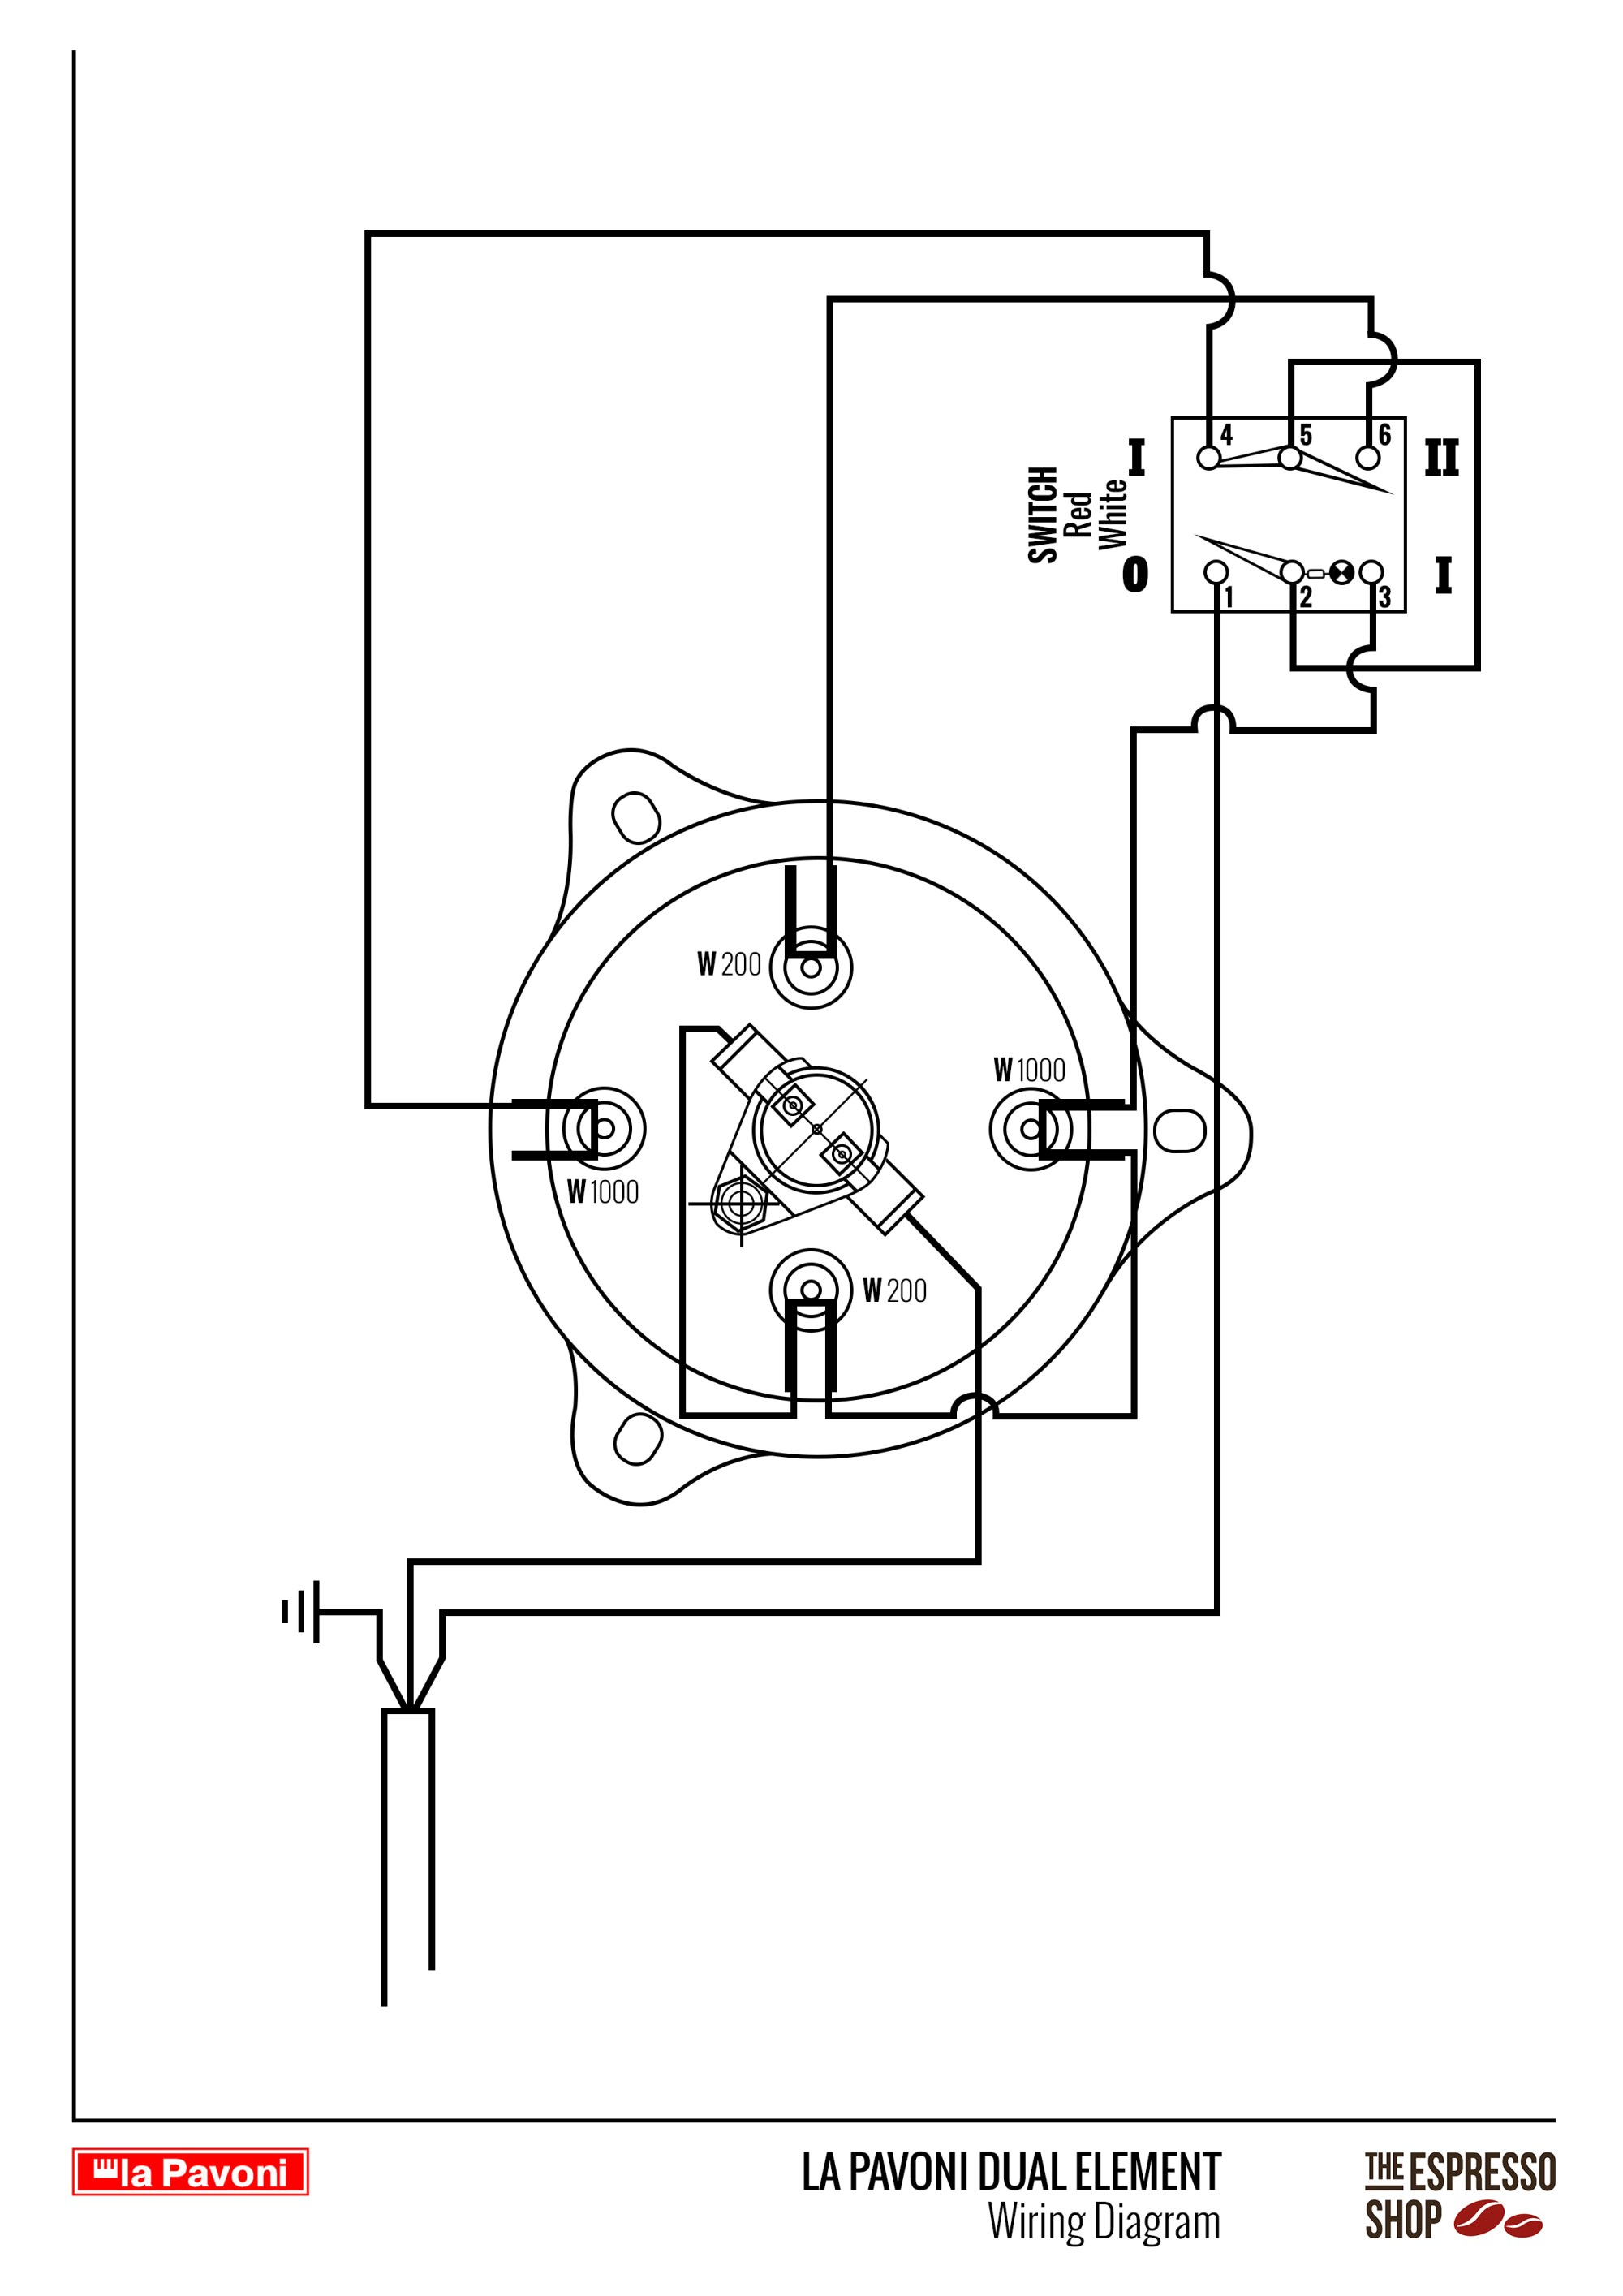 hight resolution of la pavoni dual element